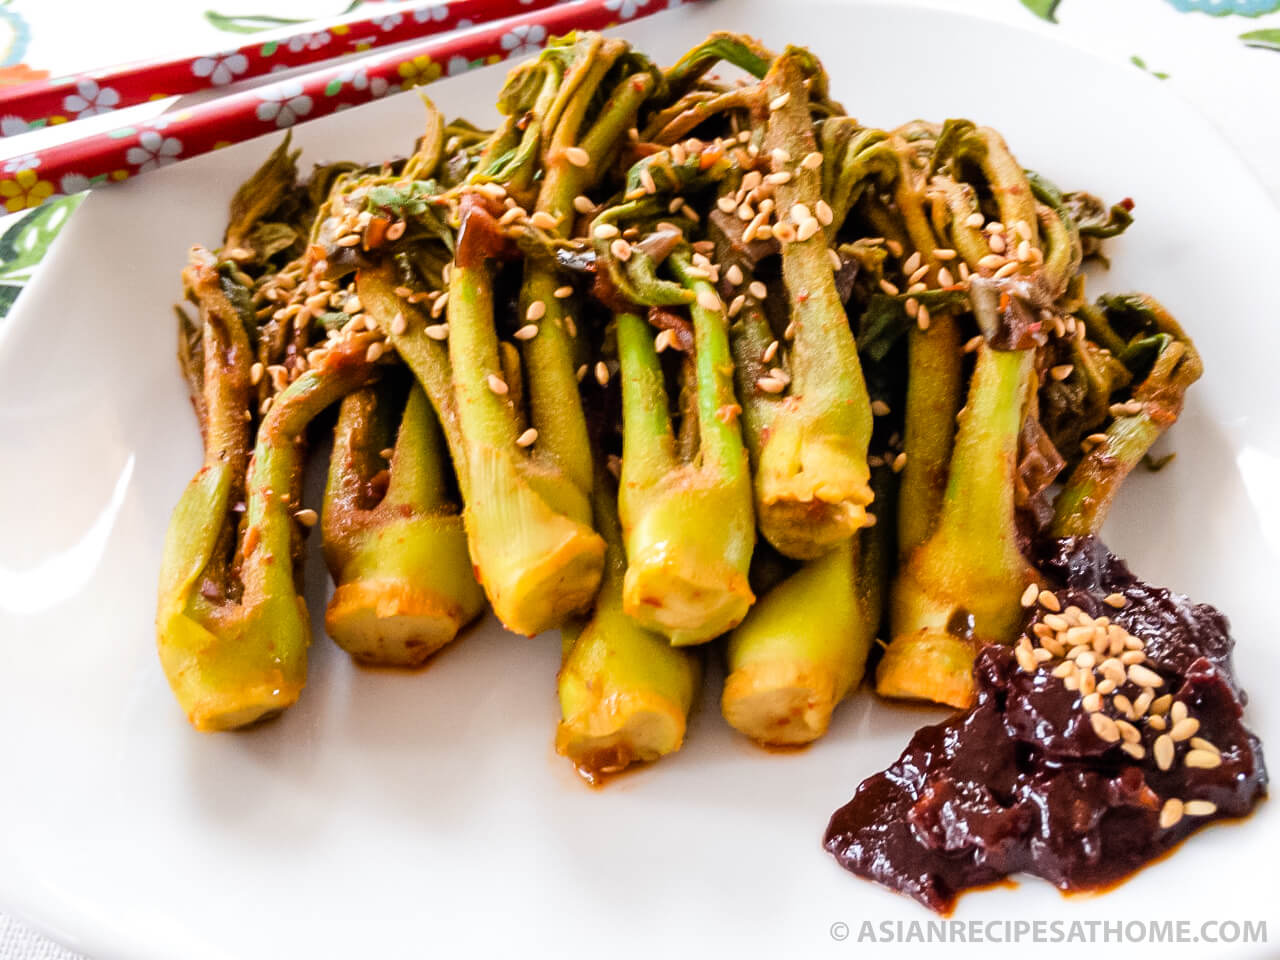 This blanched Korean Angelica-tree shoot (Dureup sukhoe) recipe is slightly sweet, spicy and a healthy side dish that is easy to make.